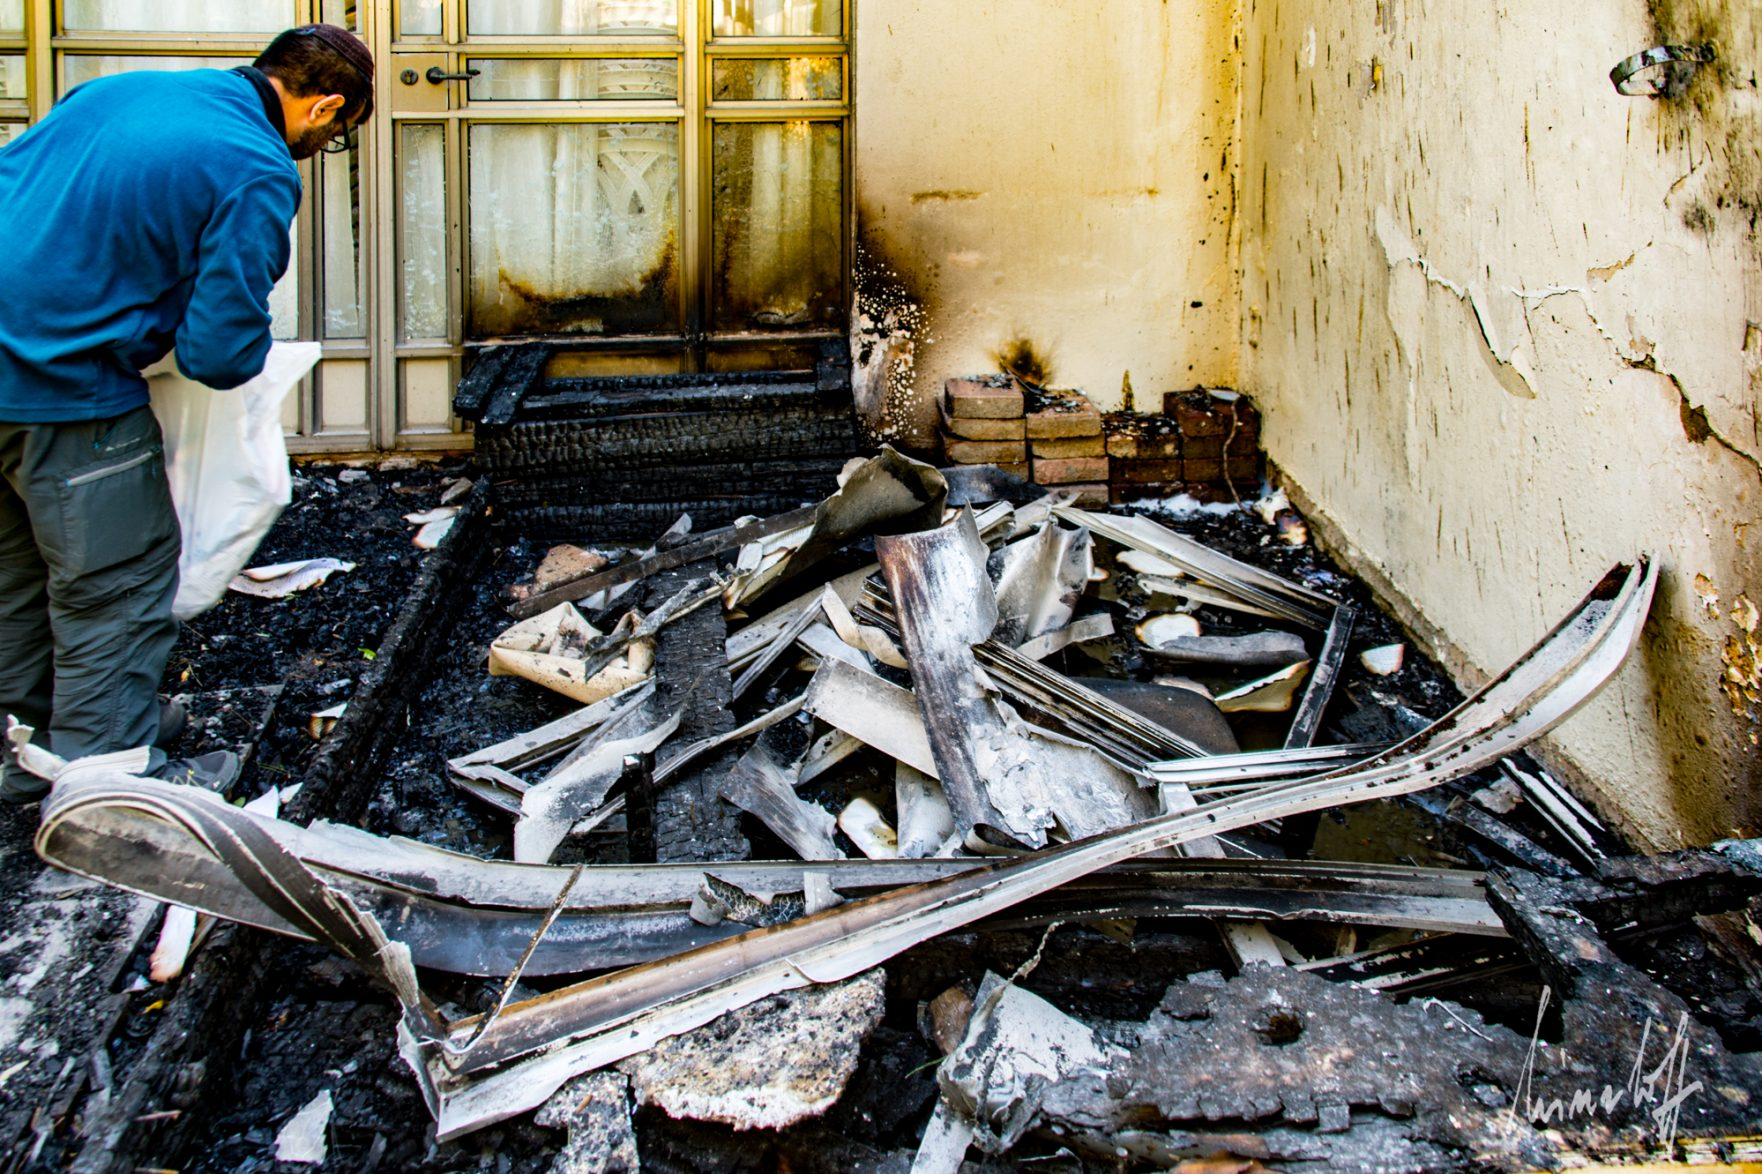 Entrance of the Moriah synagogue after the fire. Photo courtesy of Masorti.org